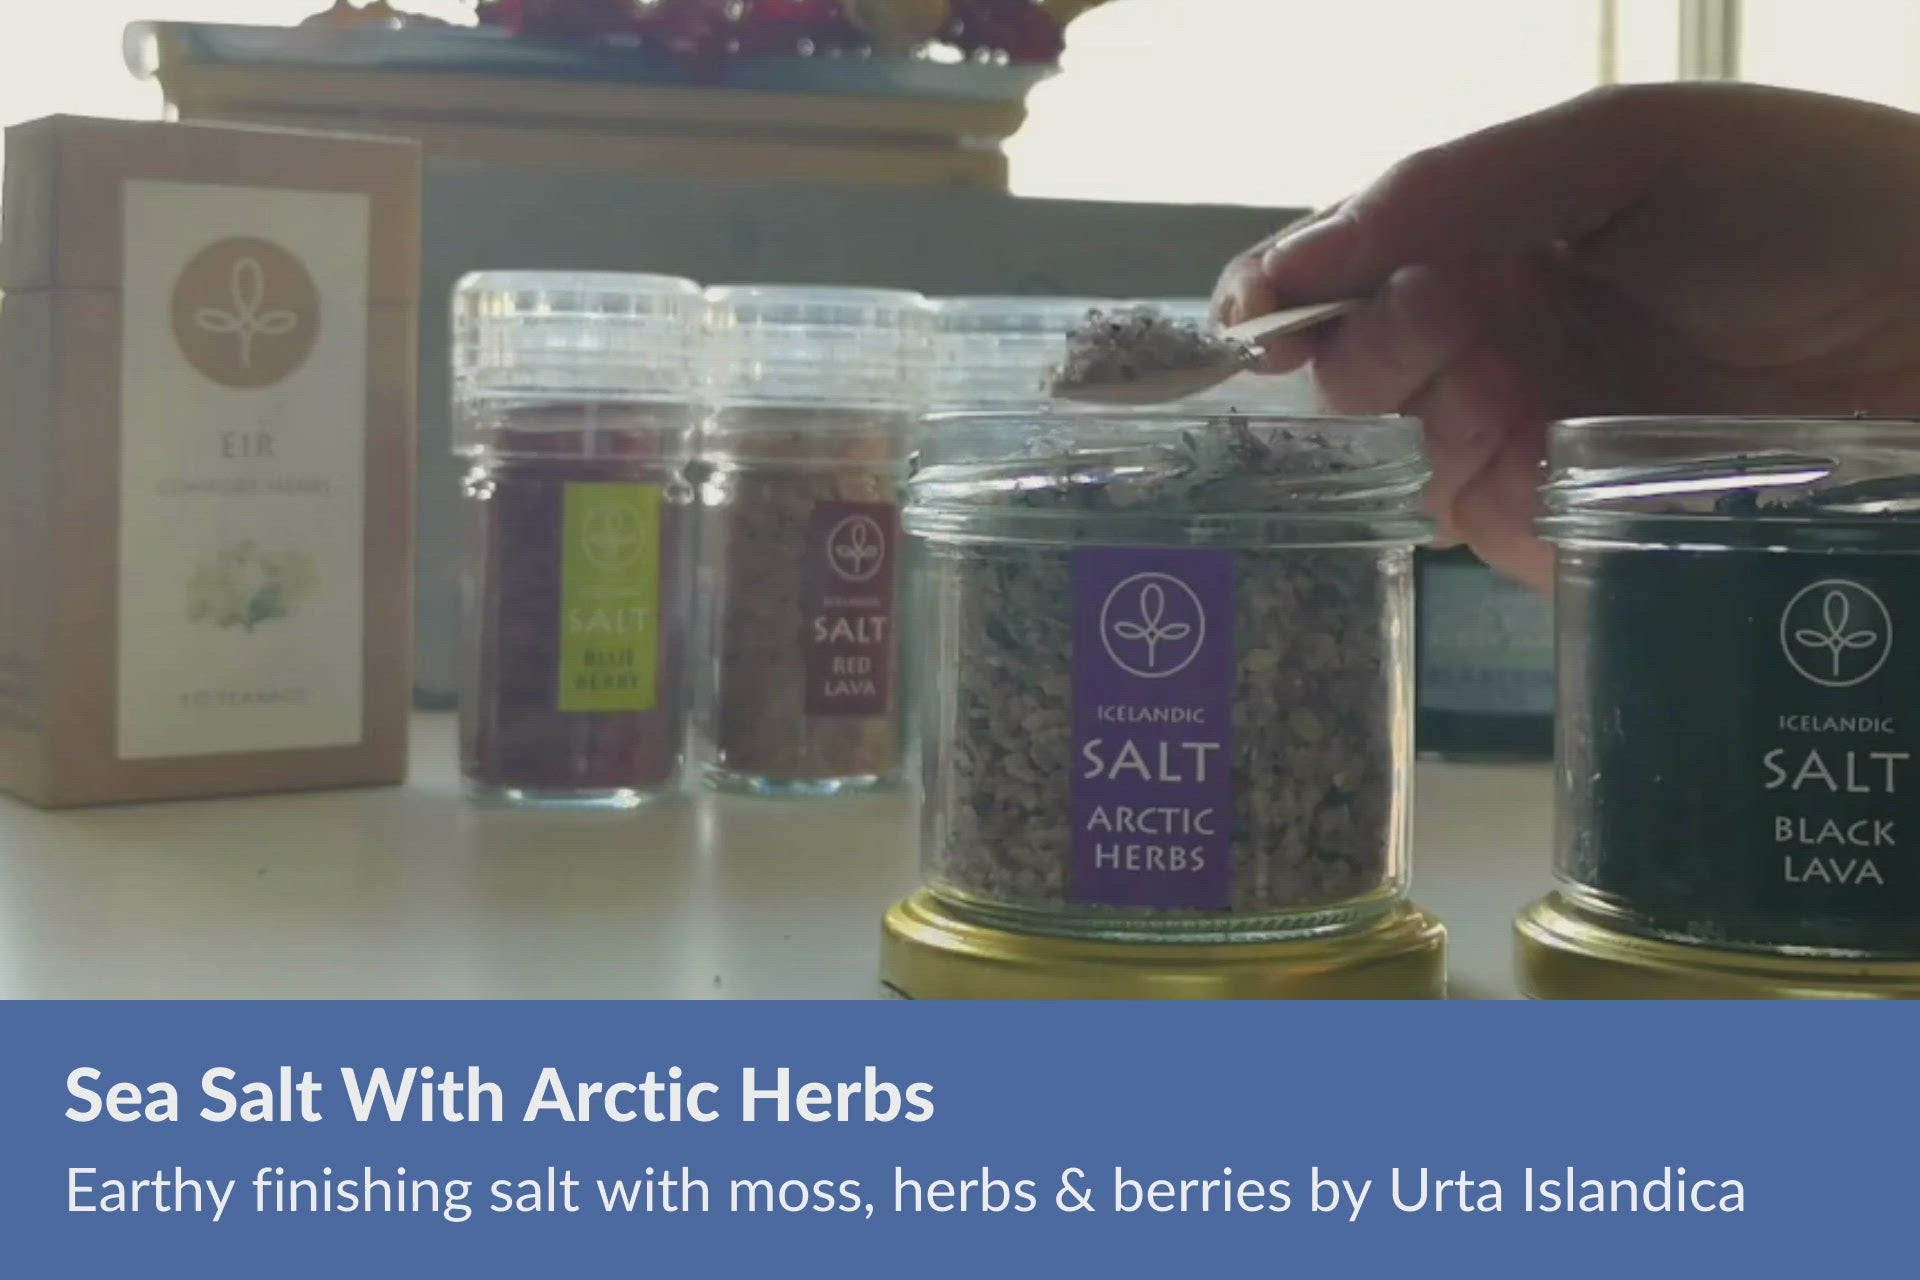 Arctic herbs sea salt Iceland by Urta Islandica